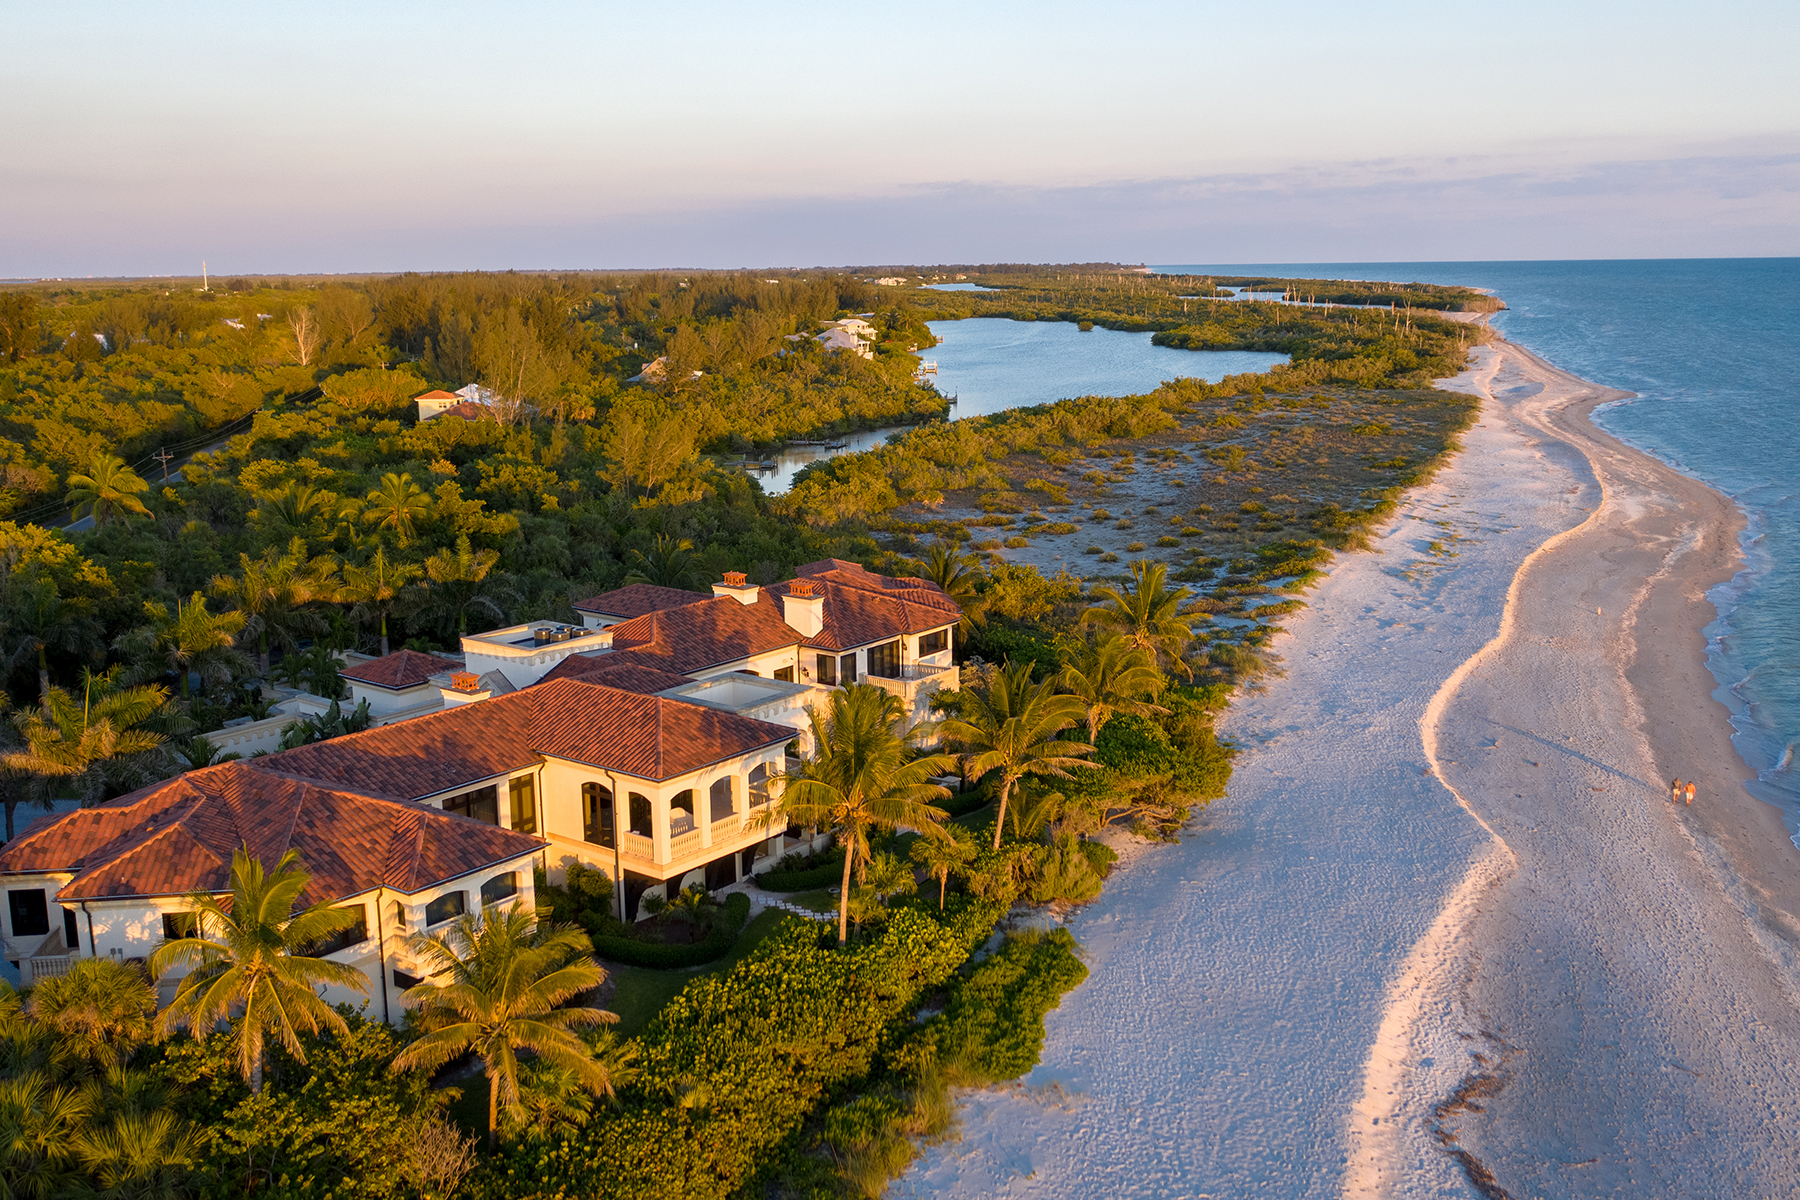 Single Family Homes for Sale at METES AND BOUNDS 6111 Sanibel Captiva Road, Sanibel, Florida 33957 United States